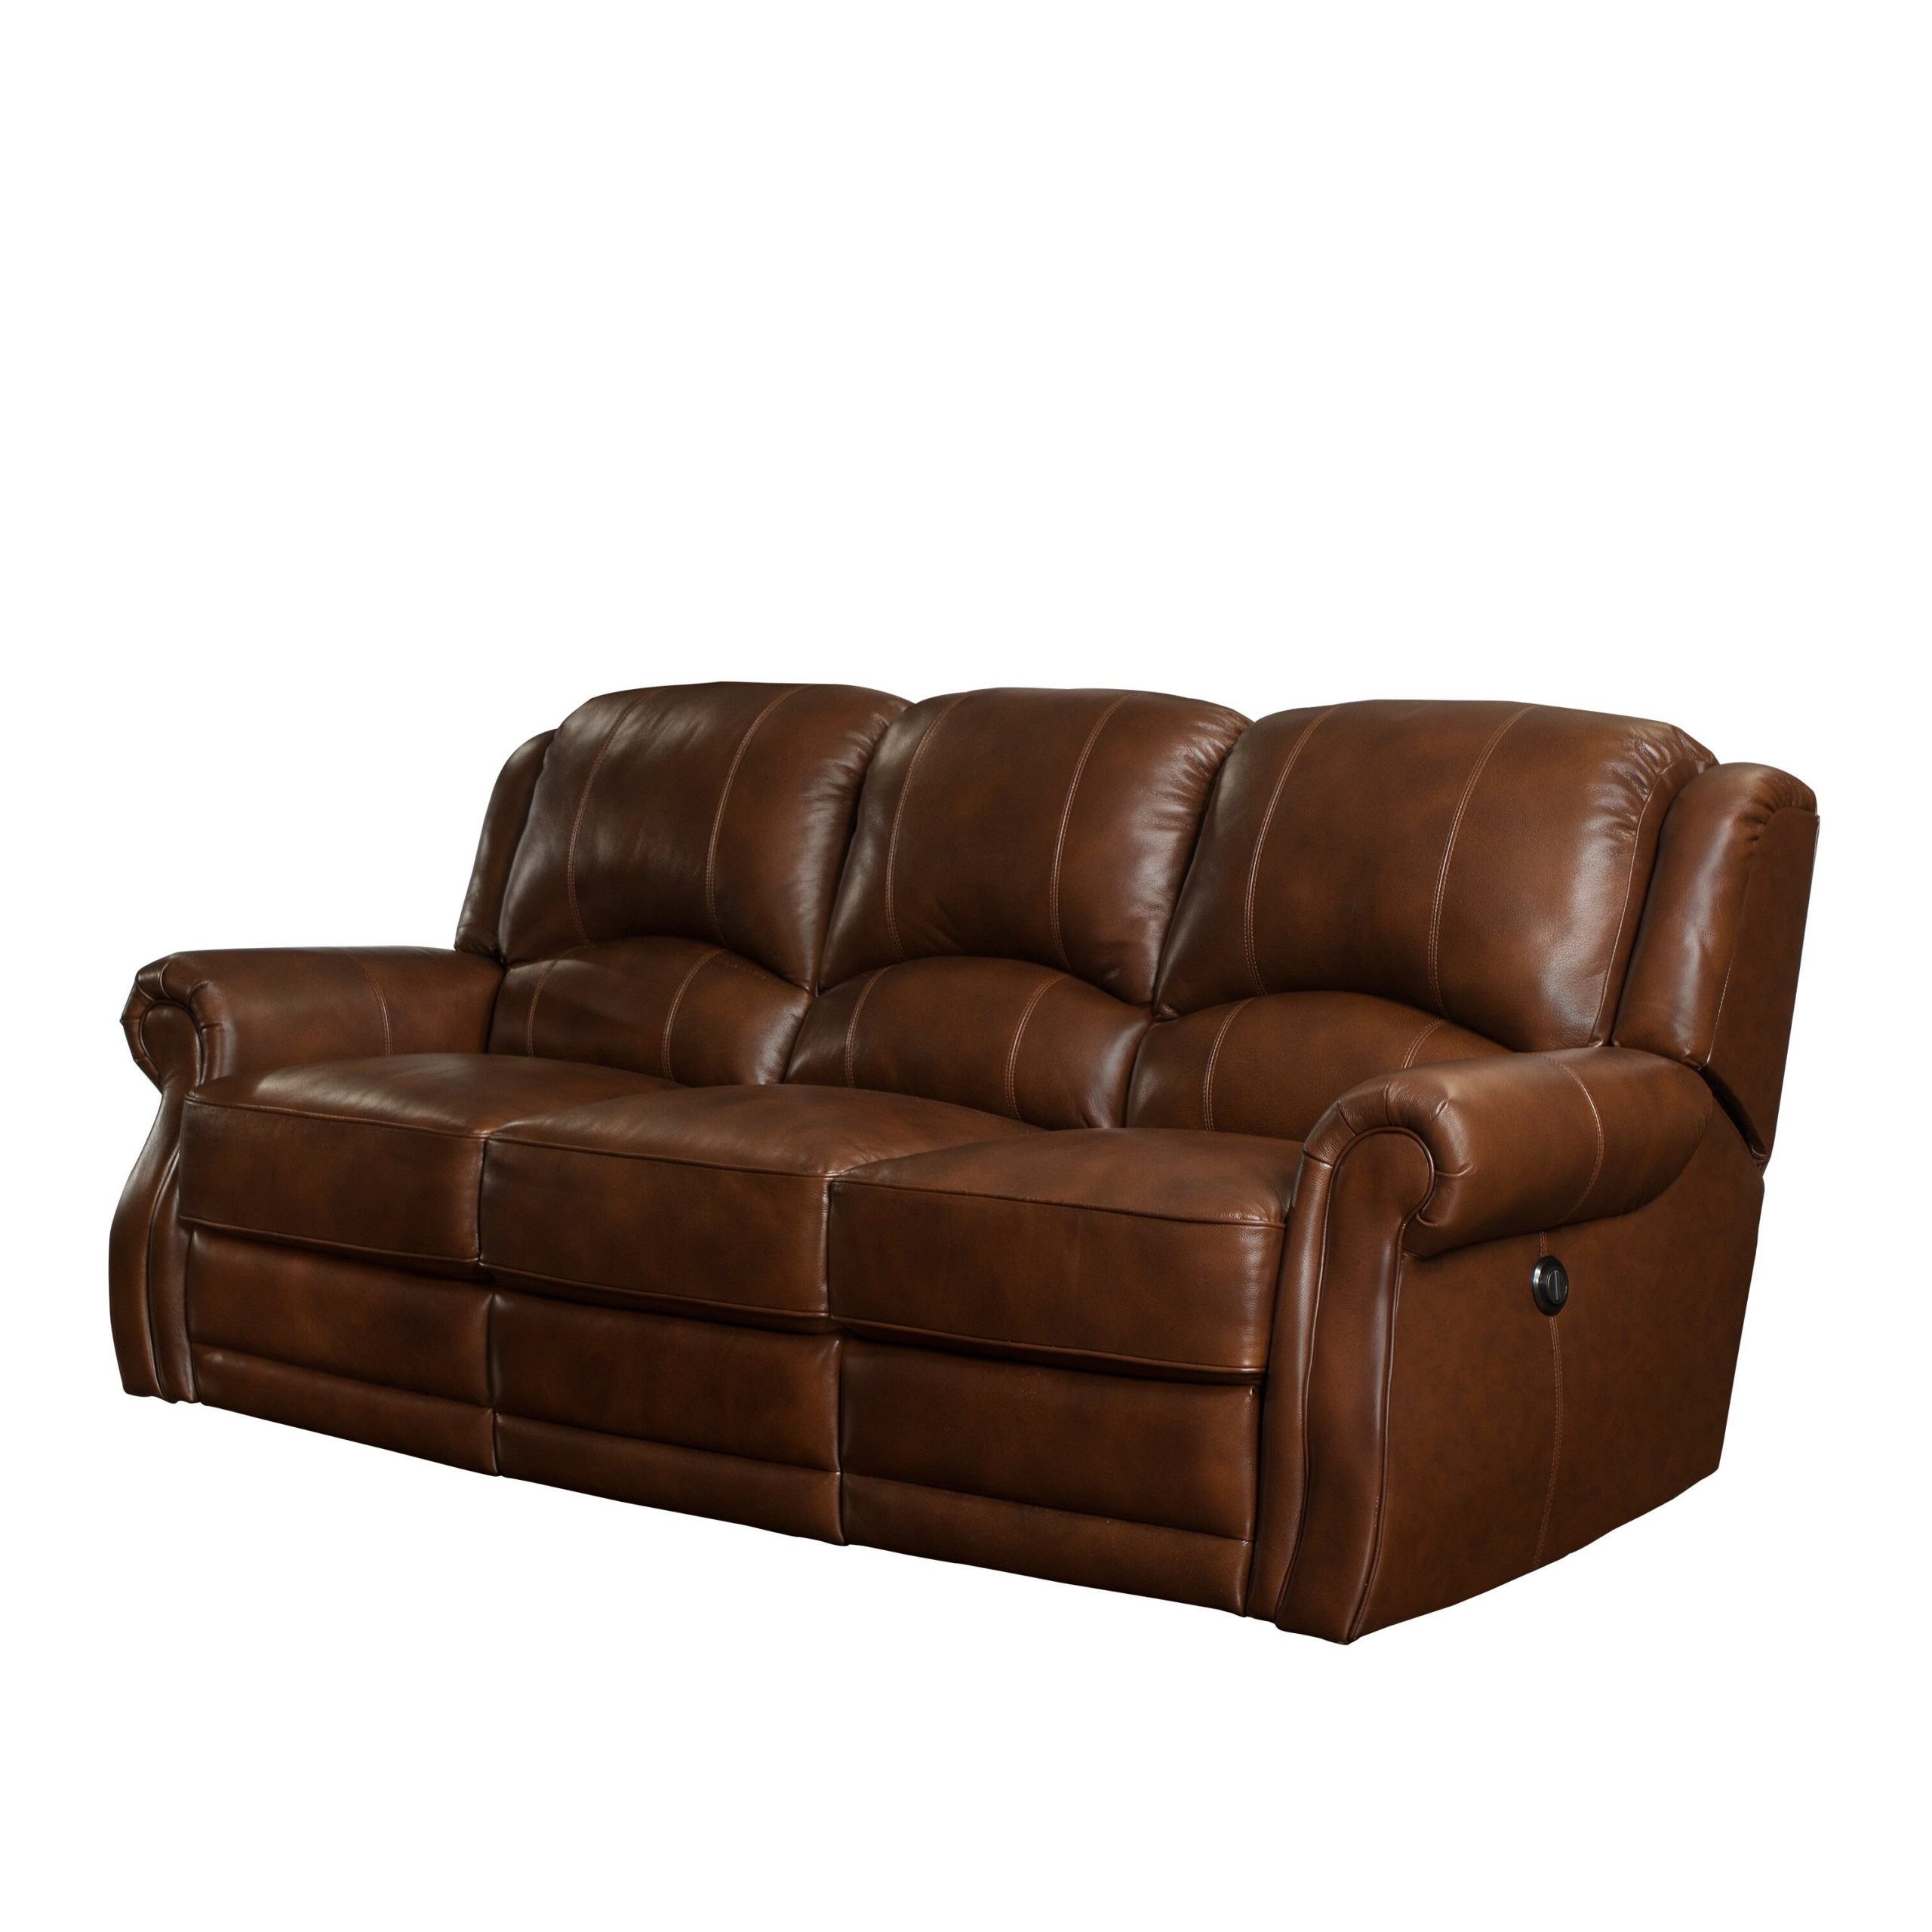 Charleston Power Reclining Sofas With Regard To Recent Barcalounger Cedar Hill Casual Comforts Power Leather (View 15 of 15)